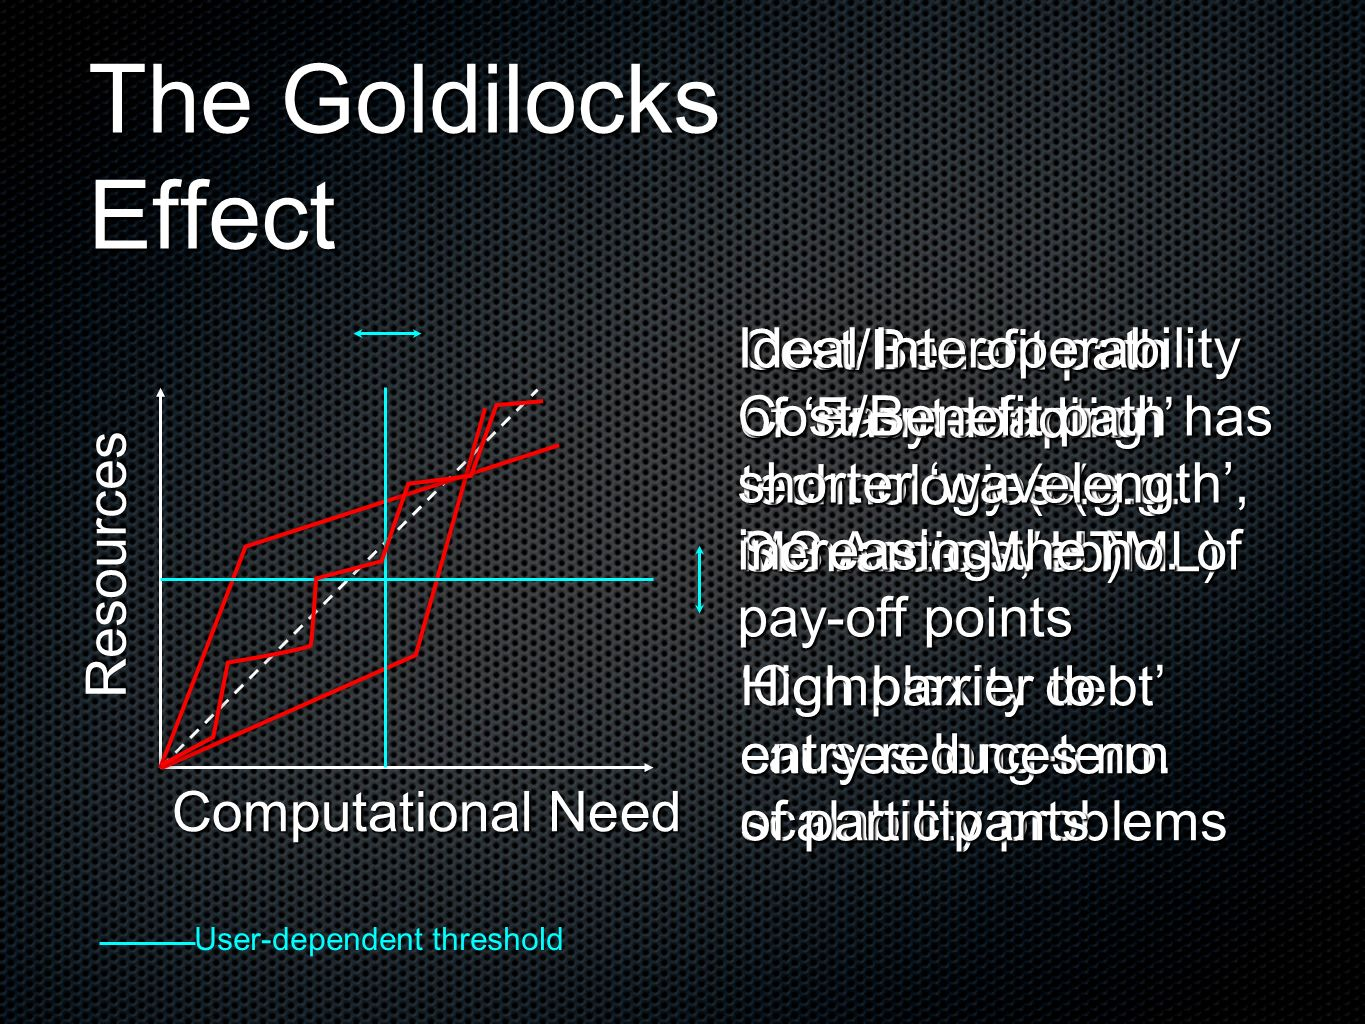 The Goldilocks Effect Computational Need Resources Cost/Benefit path of easy adoption technology (e.g. MS Access, HTML) Complexity debt causes long-te